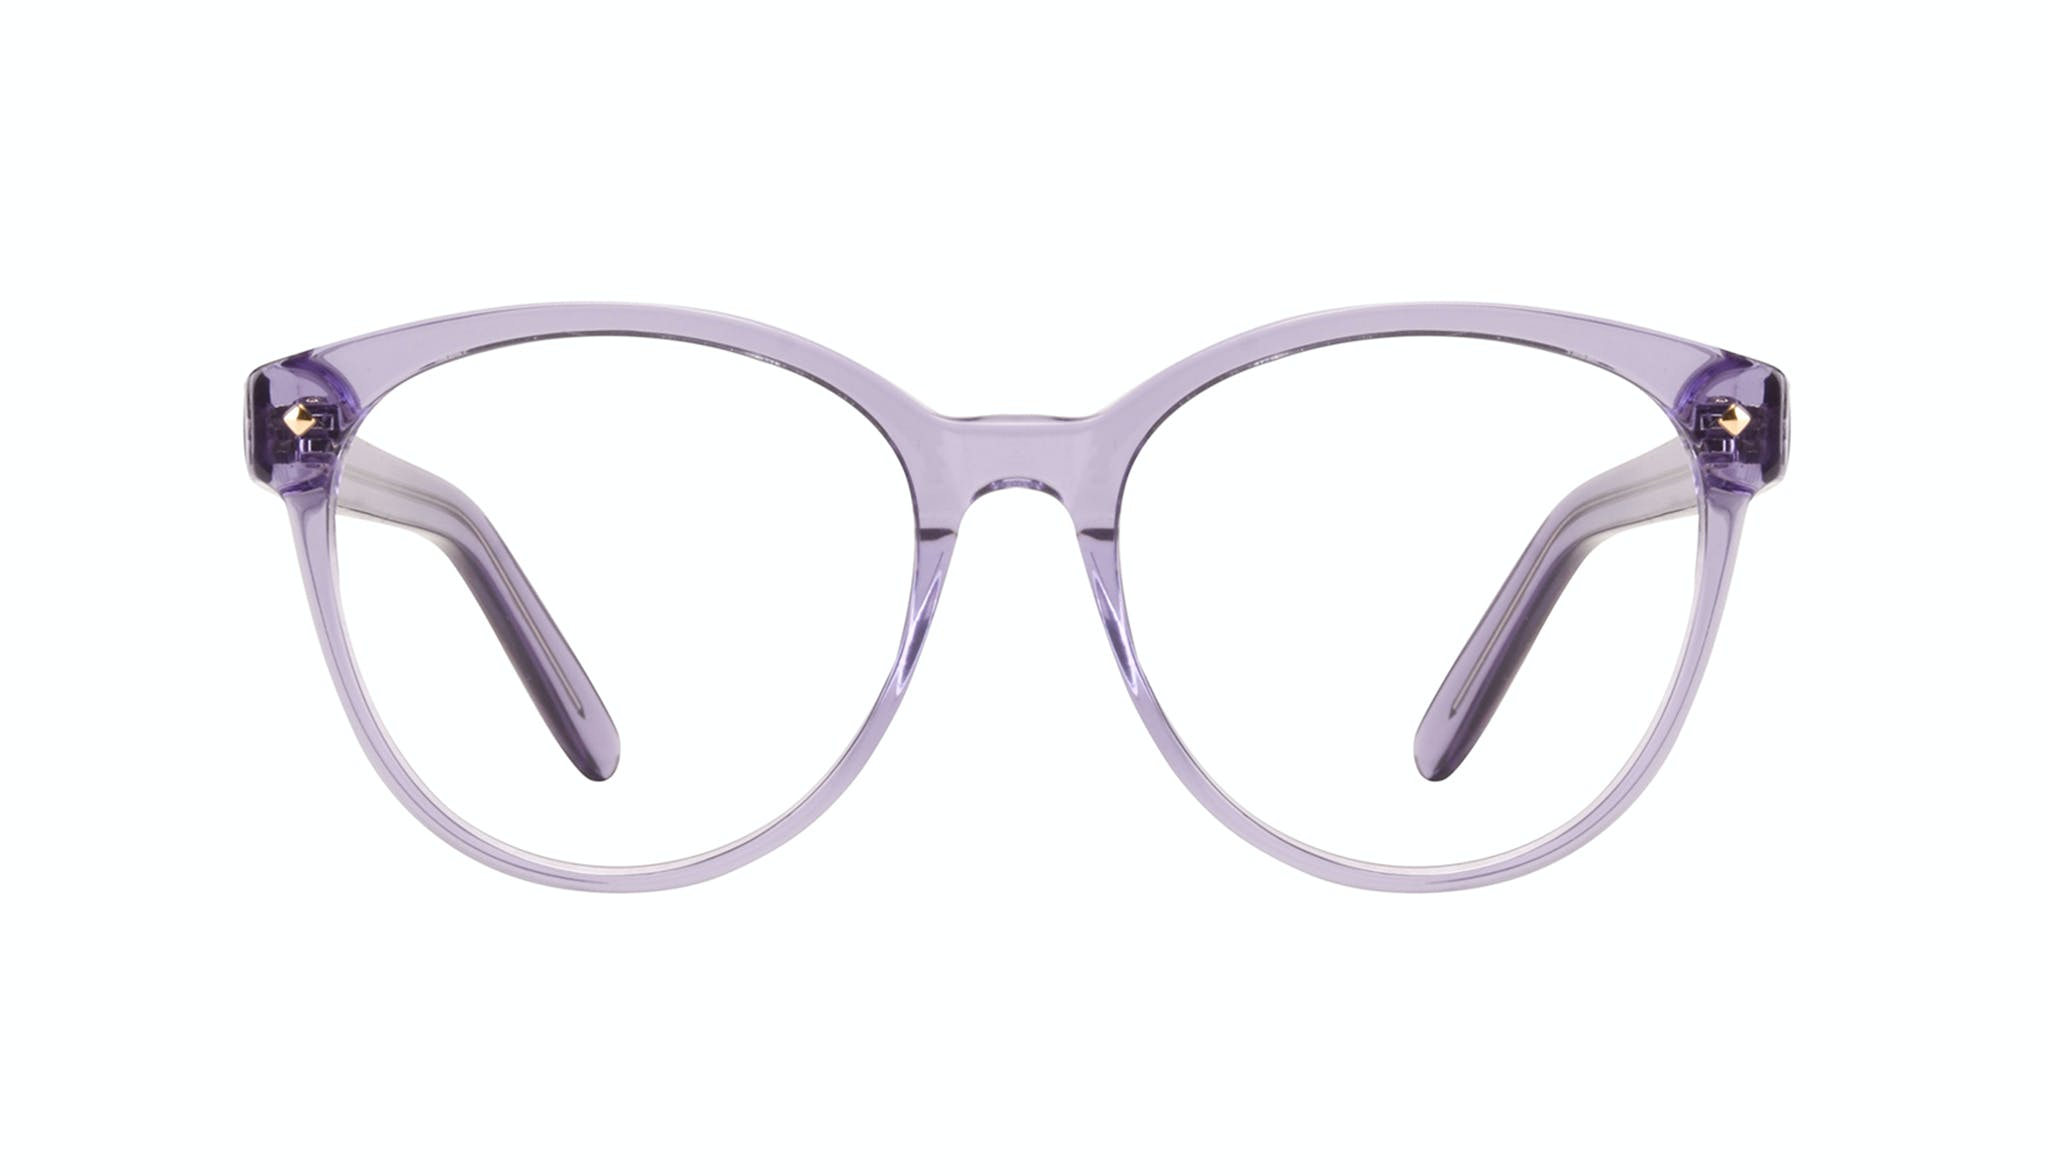 Affordable Fashion Glasses Round Eyeglasses Women Eclipse Lavender Front